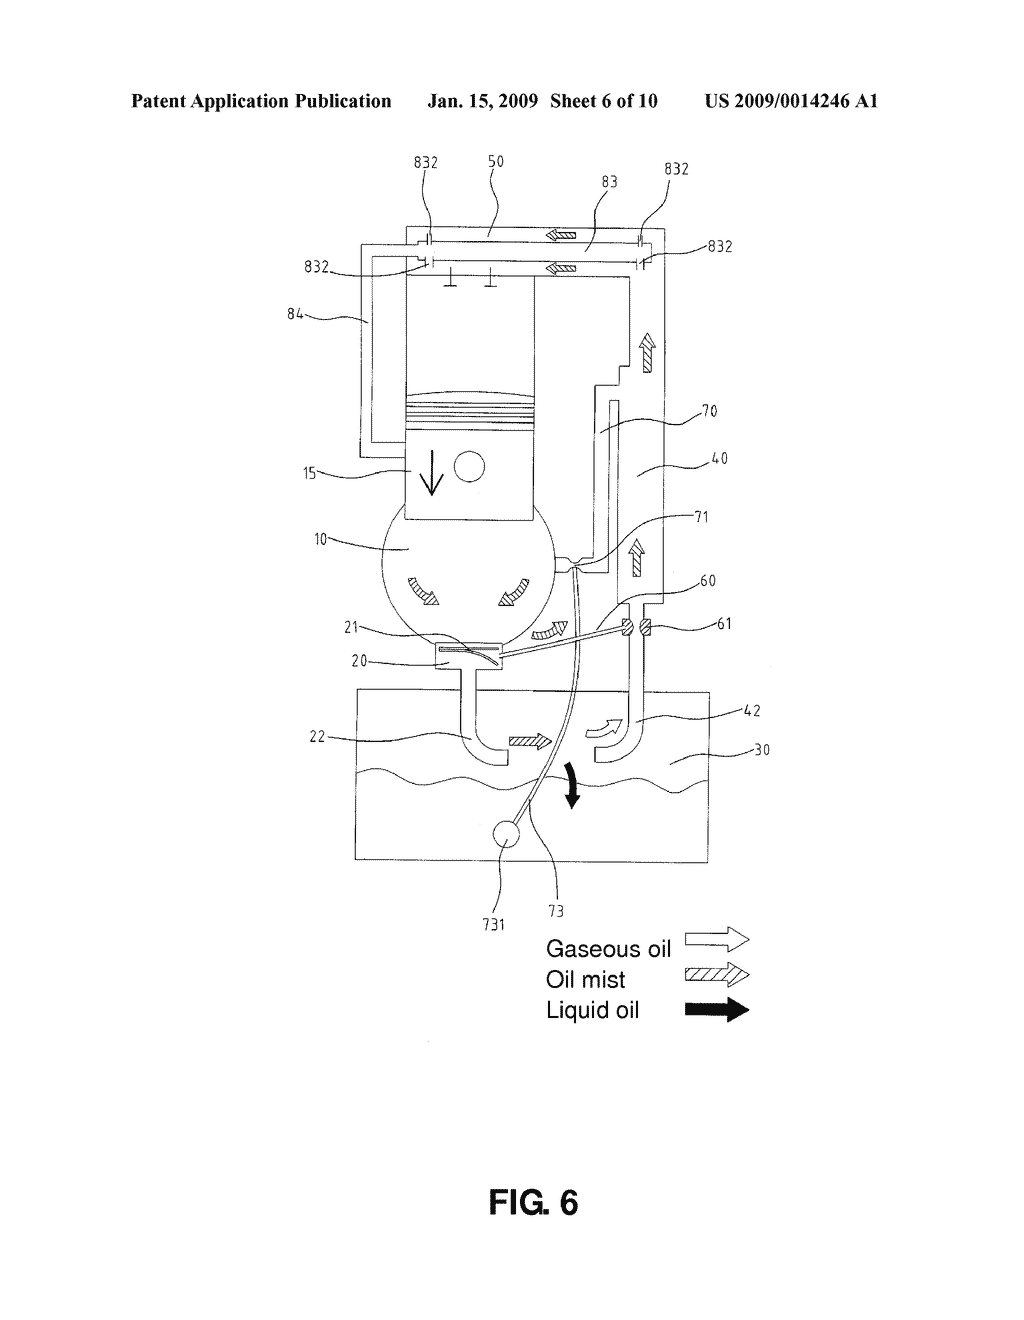 2009 Mustang Engine Diagram Wiring Library Oil System Lubrication For Four Stroke Schematic And Image 07